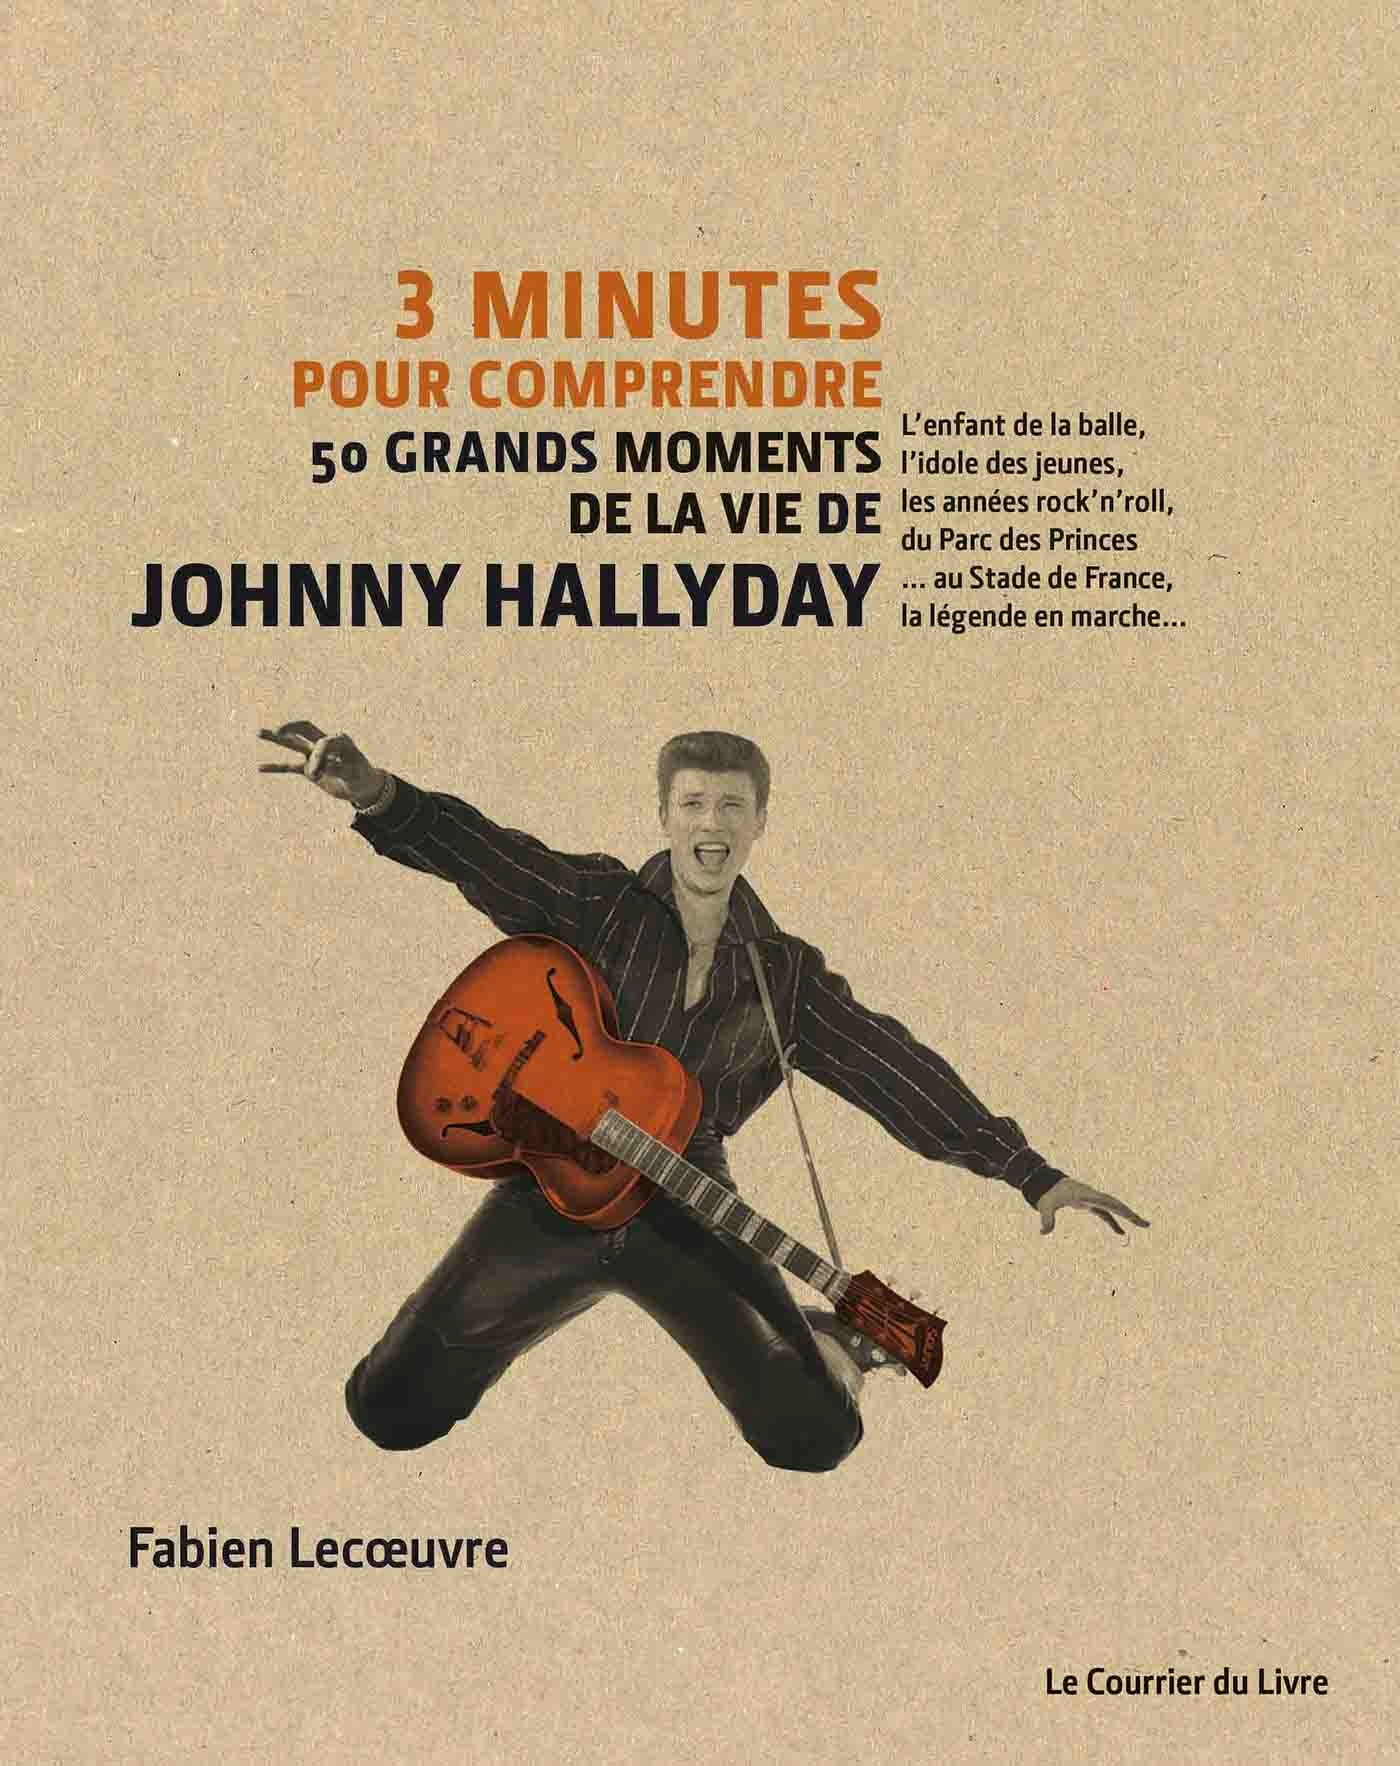 3 minutes pour comprendre 50 grands moments de la vie de Johnny Hallyday